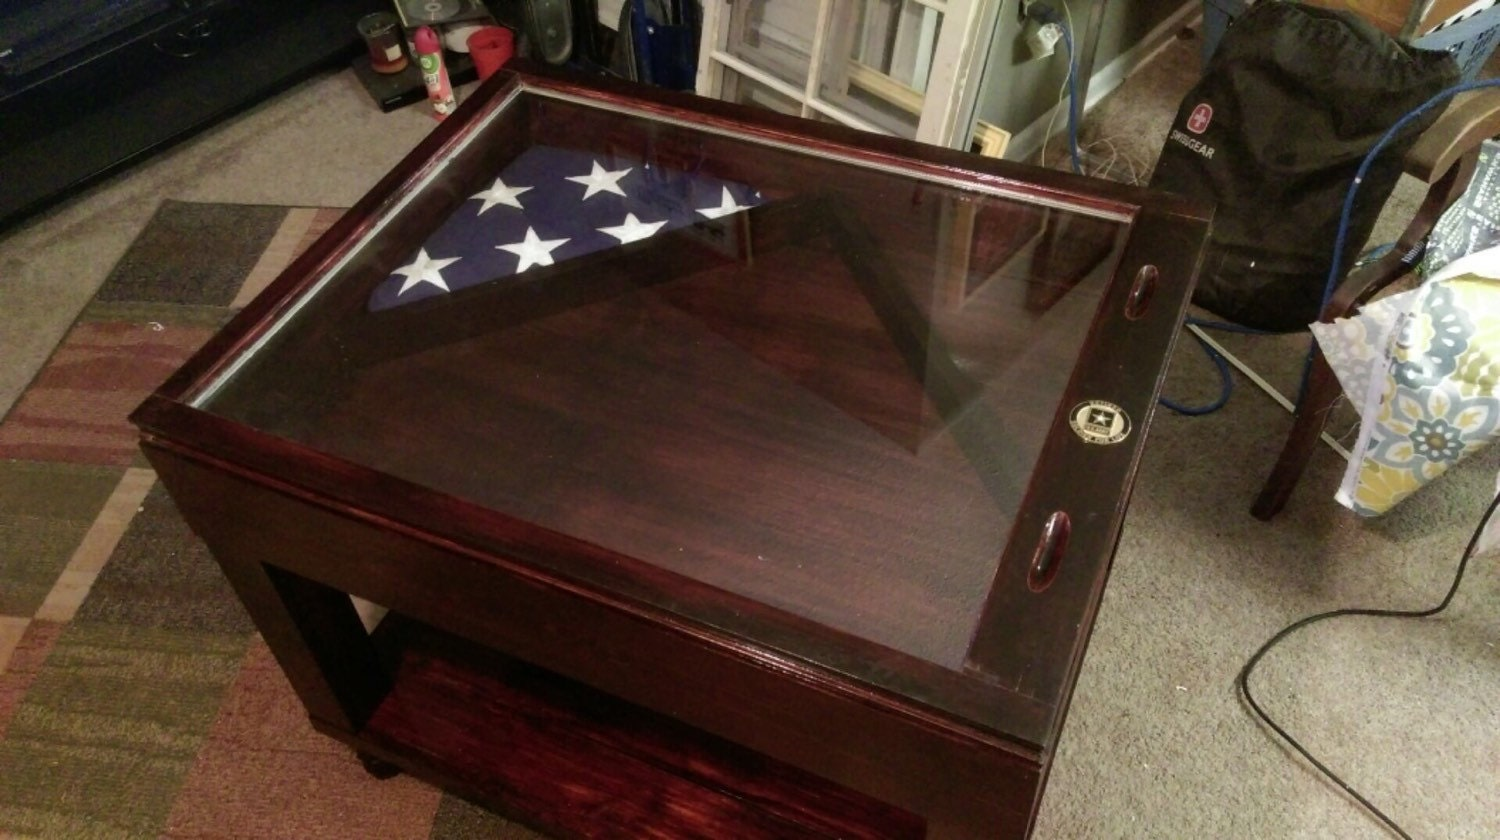 old an a untitled happy building military memorial post wood flag box coffee day s shadow flagshadowbox table on here shadowbox talk let